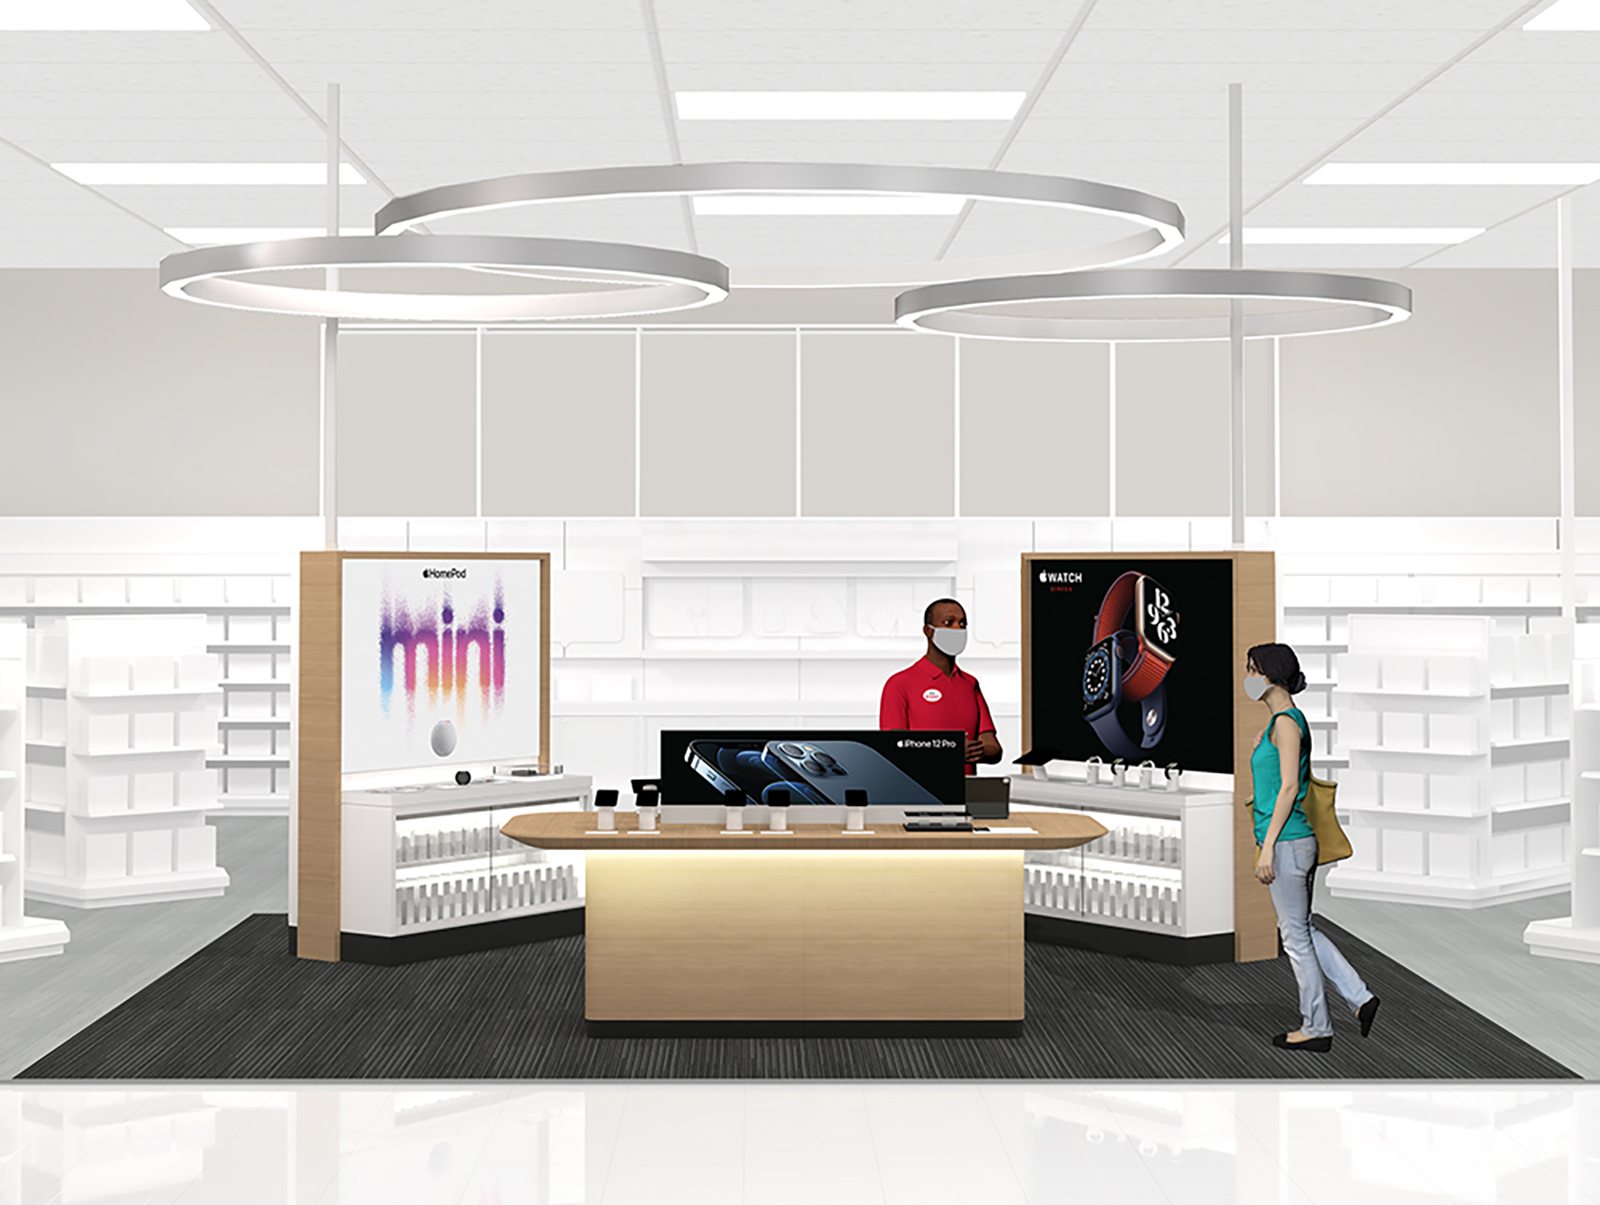 Apple mini stores are coming to some Targets